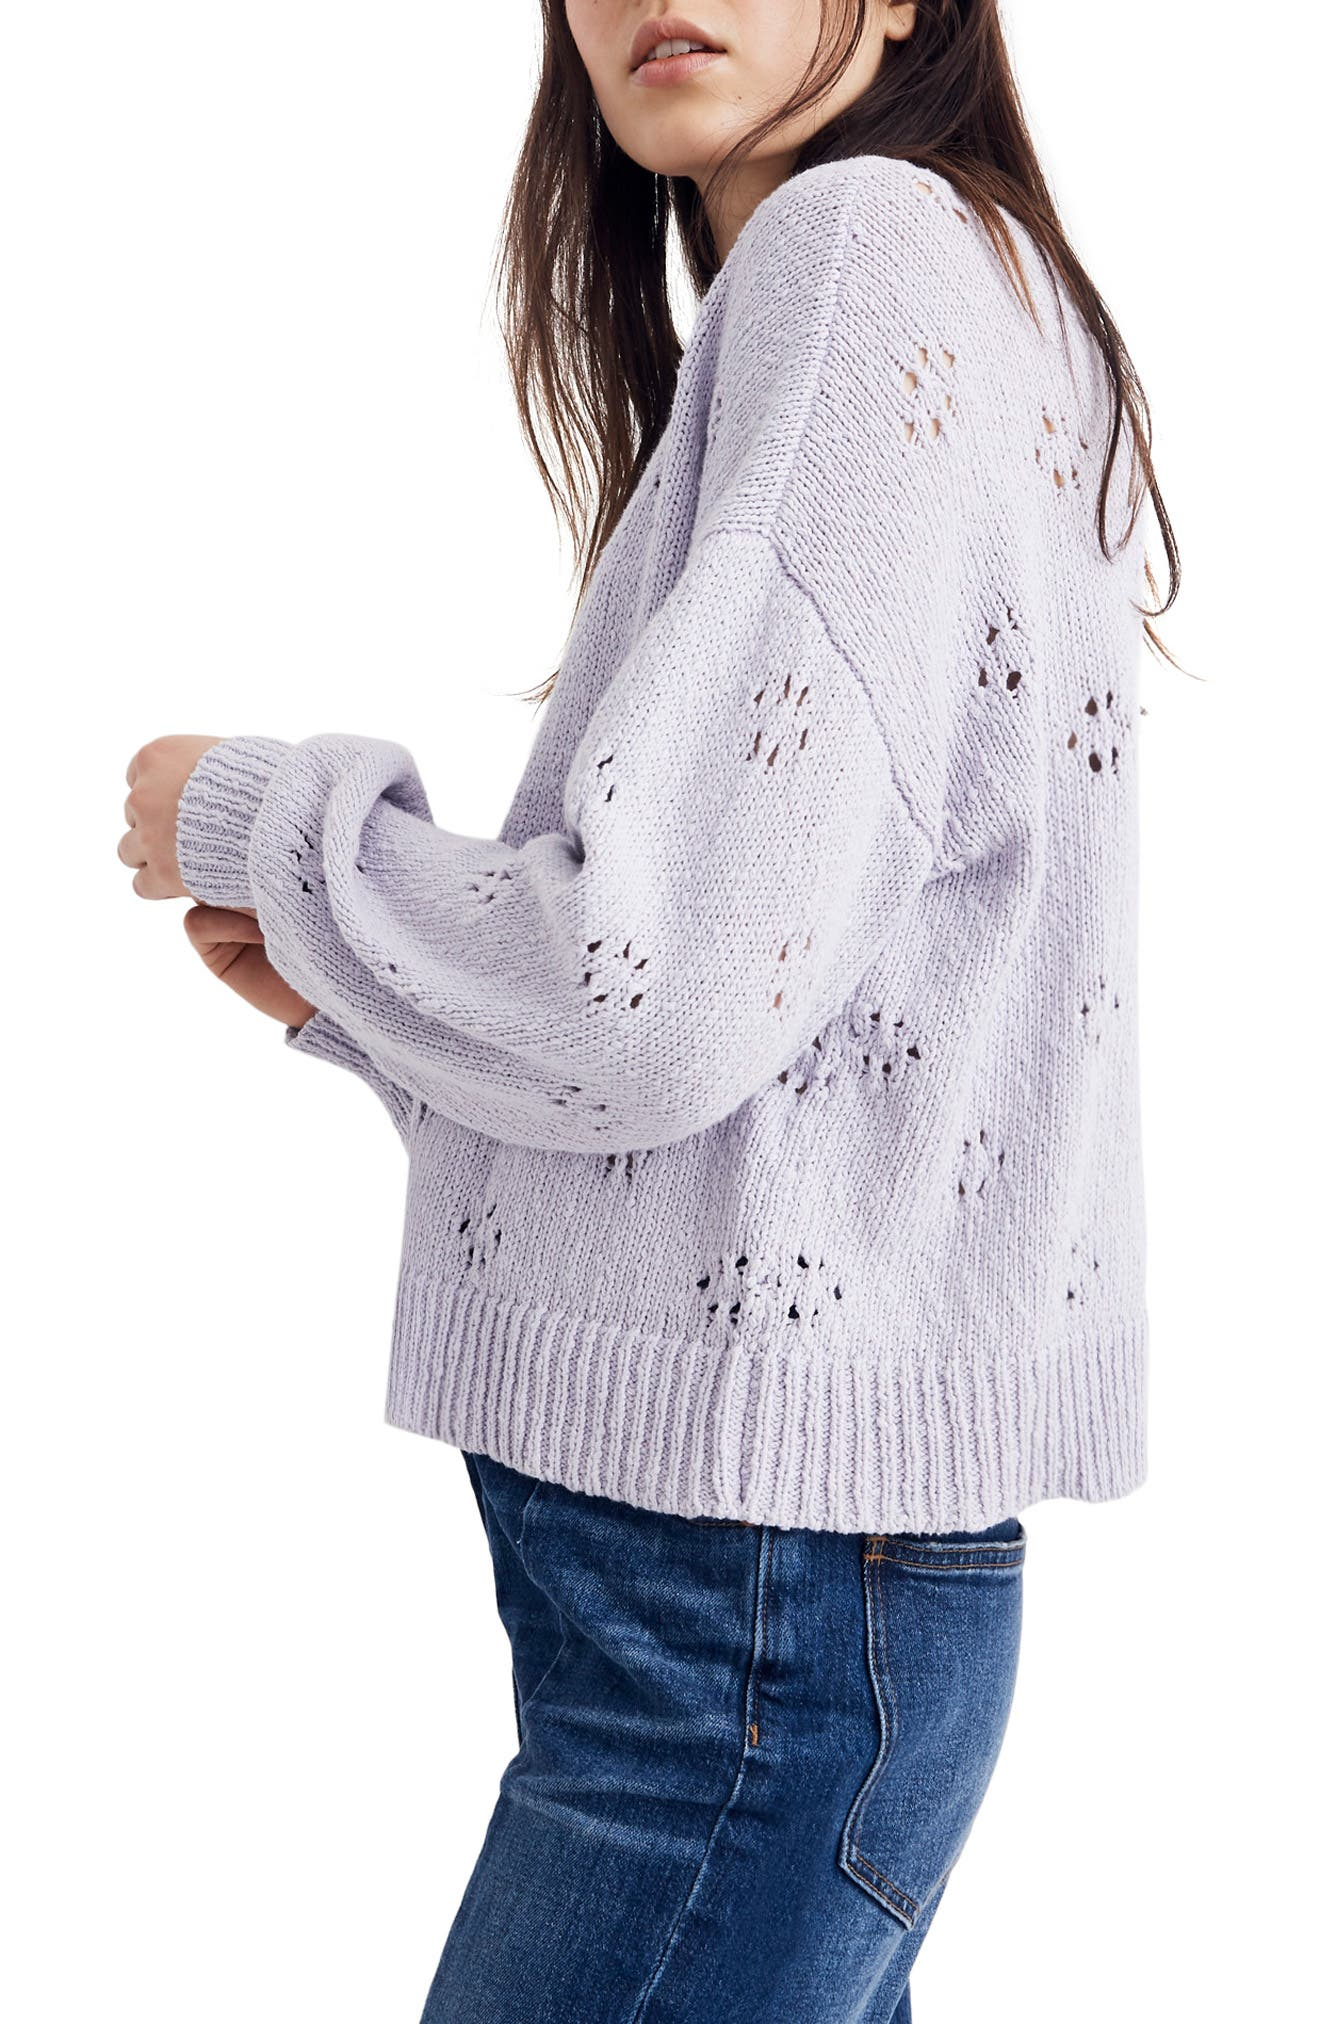 MADEWELL, Floral Pointelle Pullover Sweater, Alternate thumbnail 4, color, SUNDRENCHED LILAC